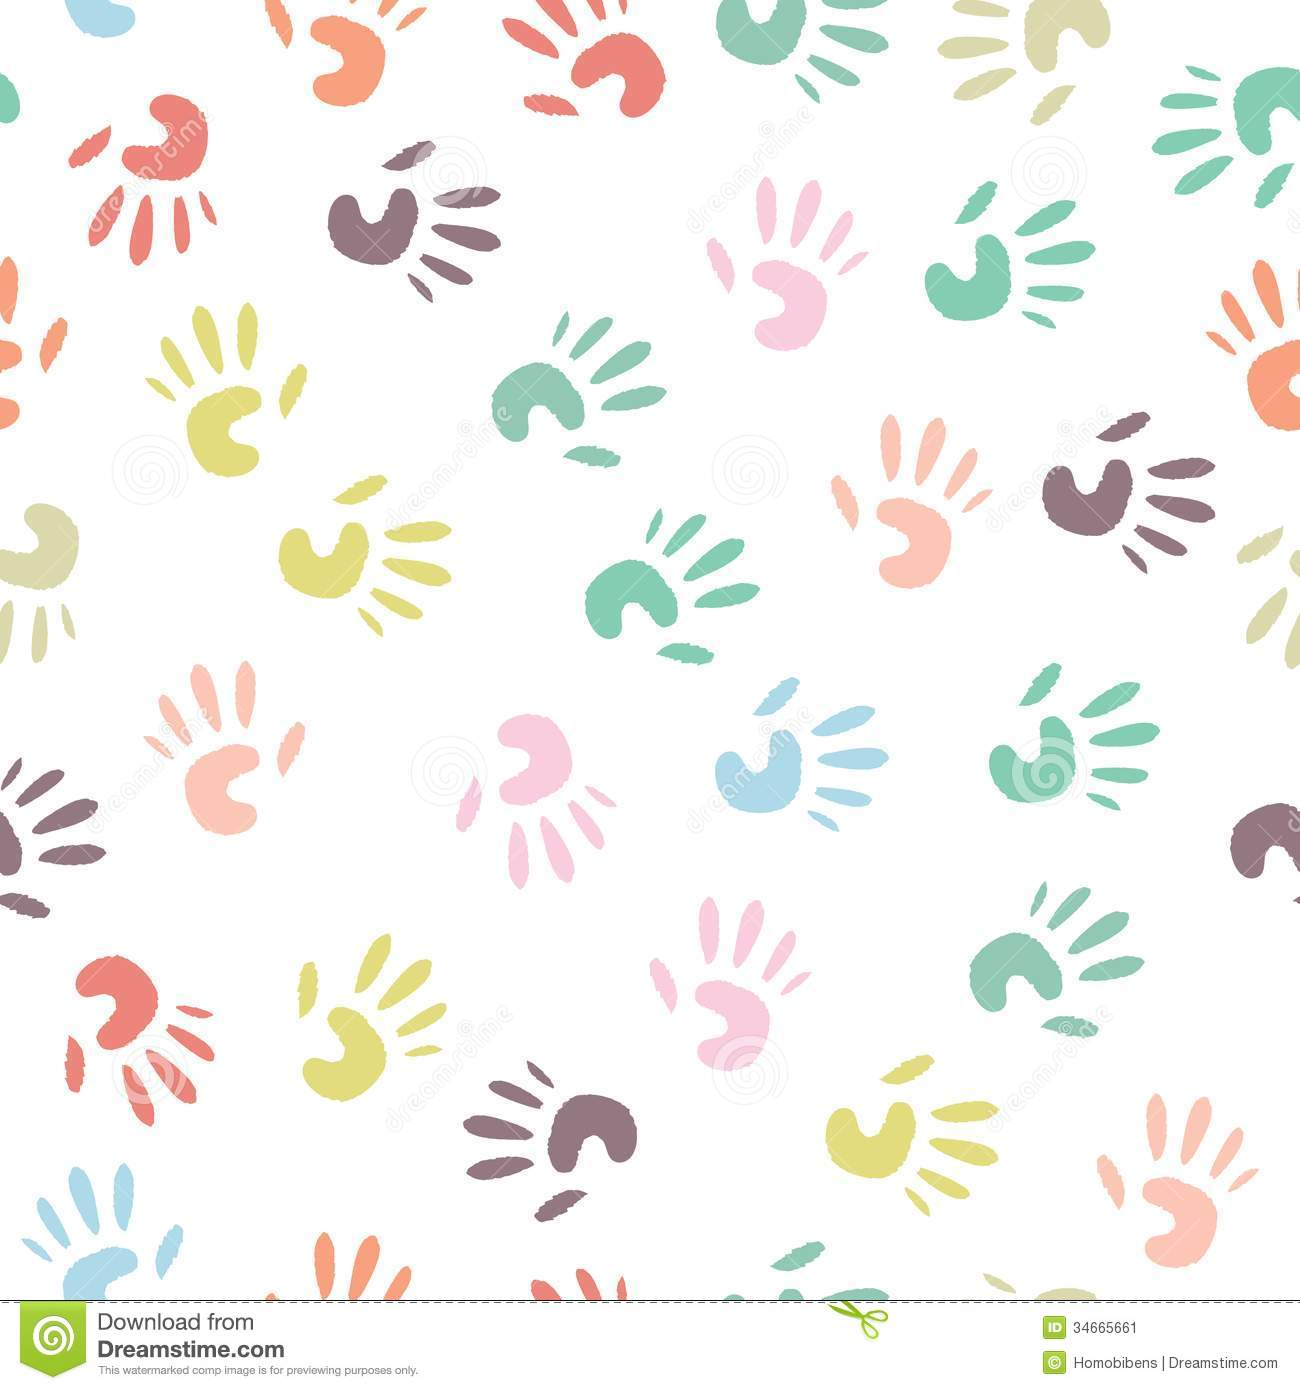 Baby Patterns : Baby colorful handprint, seamless pattern on a white background.